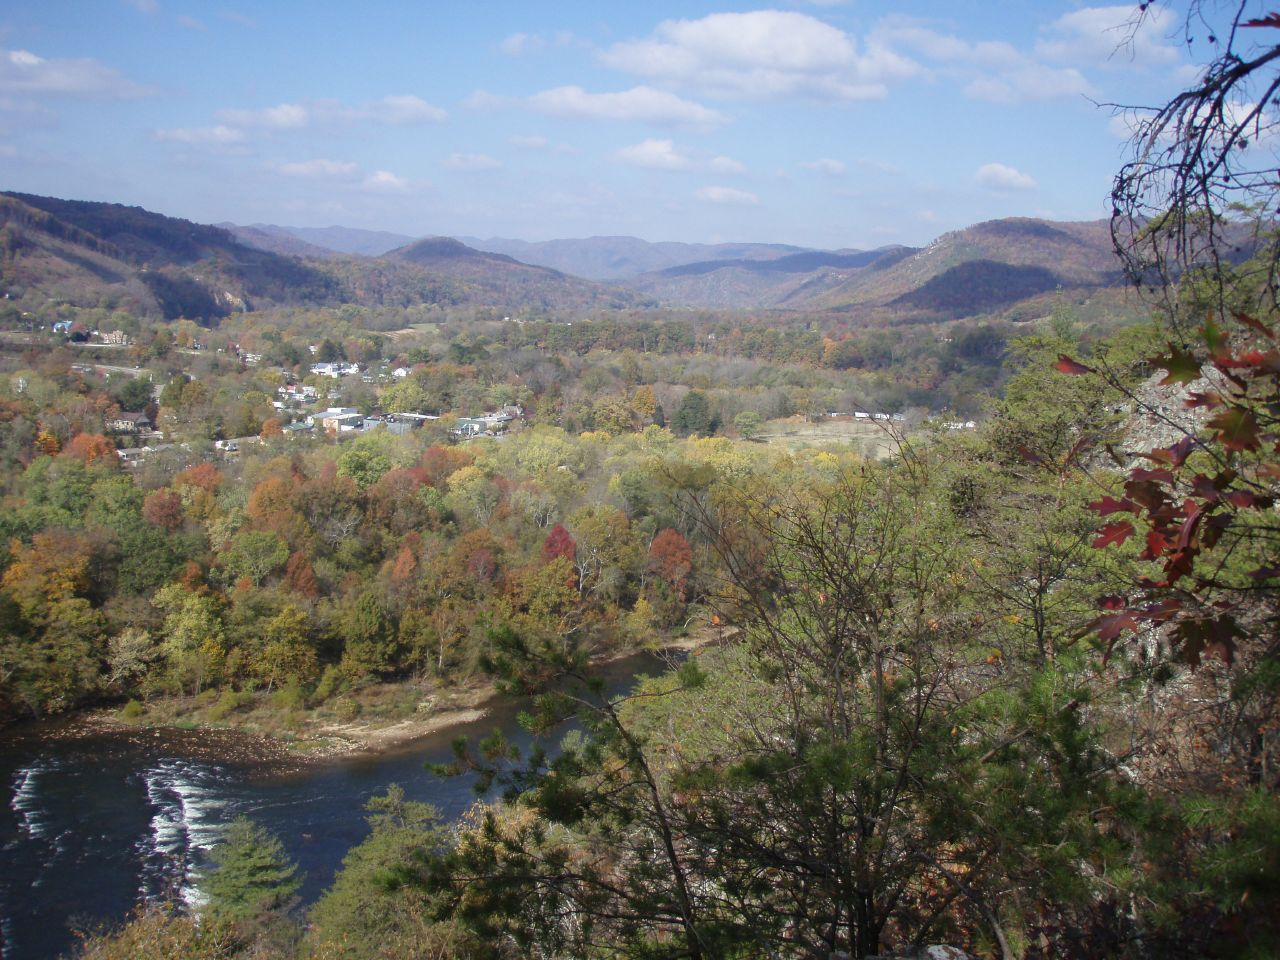 A view of Hot Springs, NC